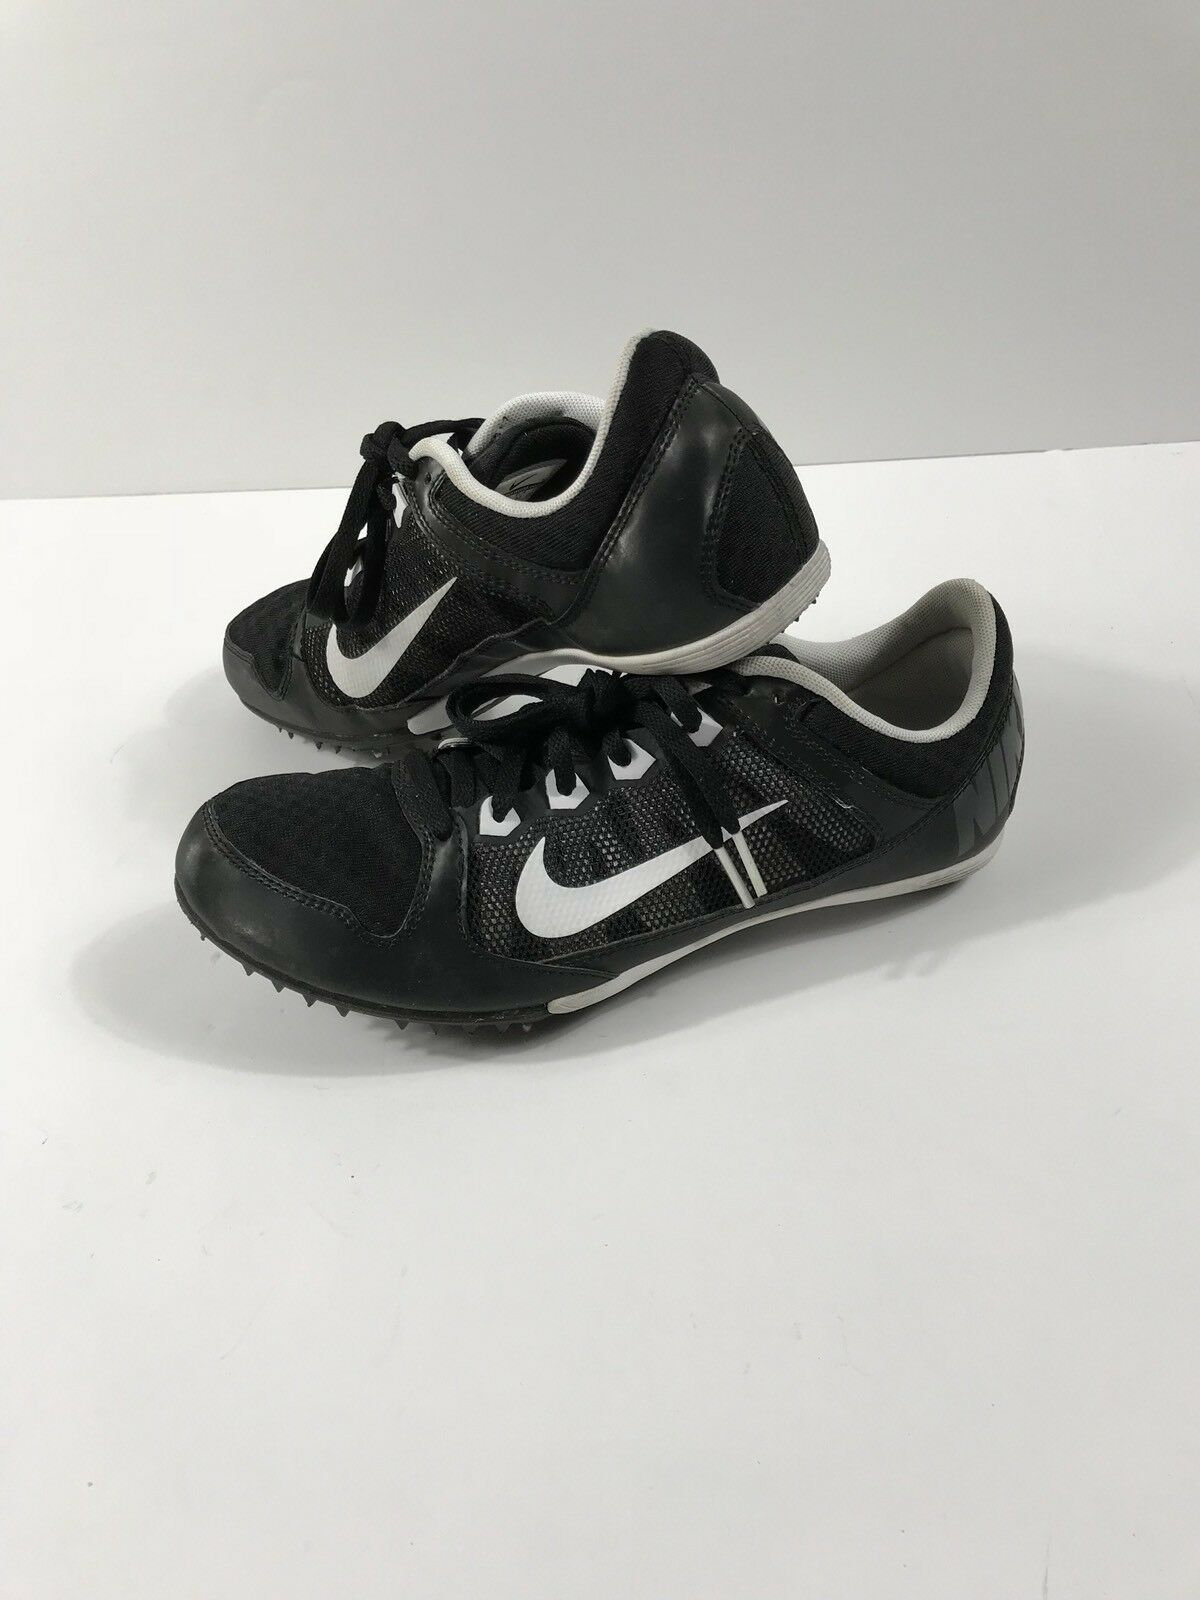 Nike Zoom Rival MD 7 Distance Track Spike Men's 9.5 Black/White  Cheap women's shoes women's shoes